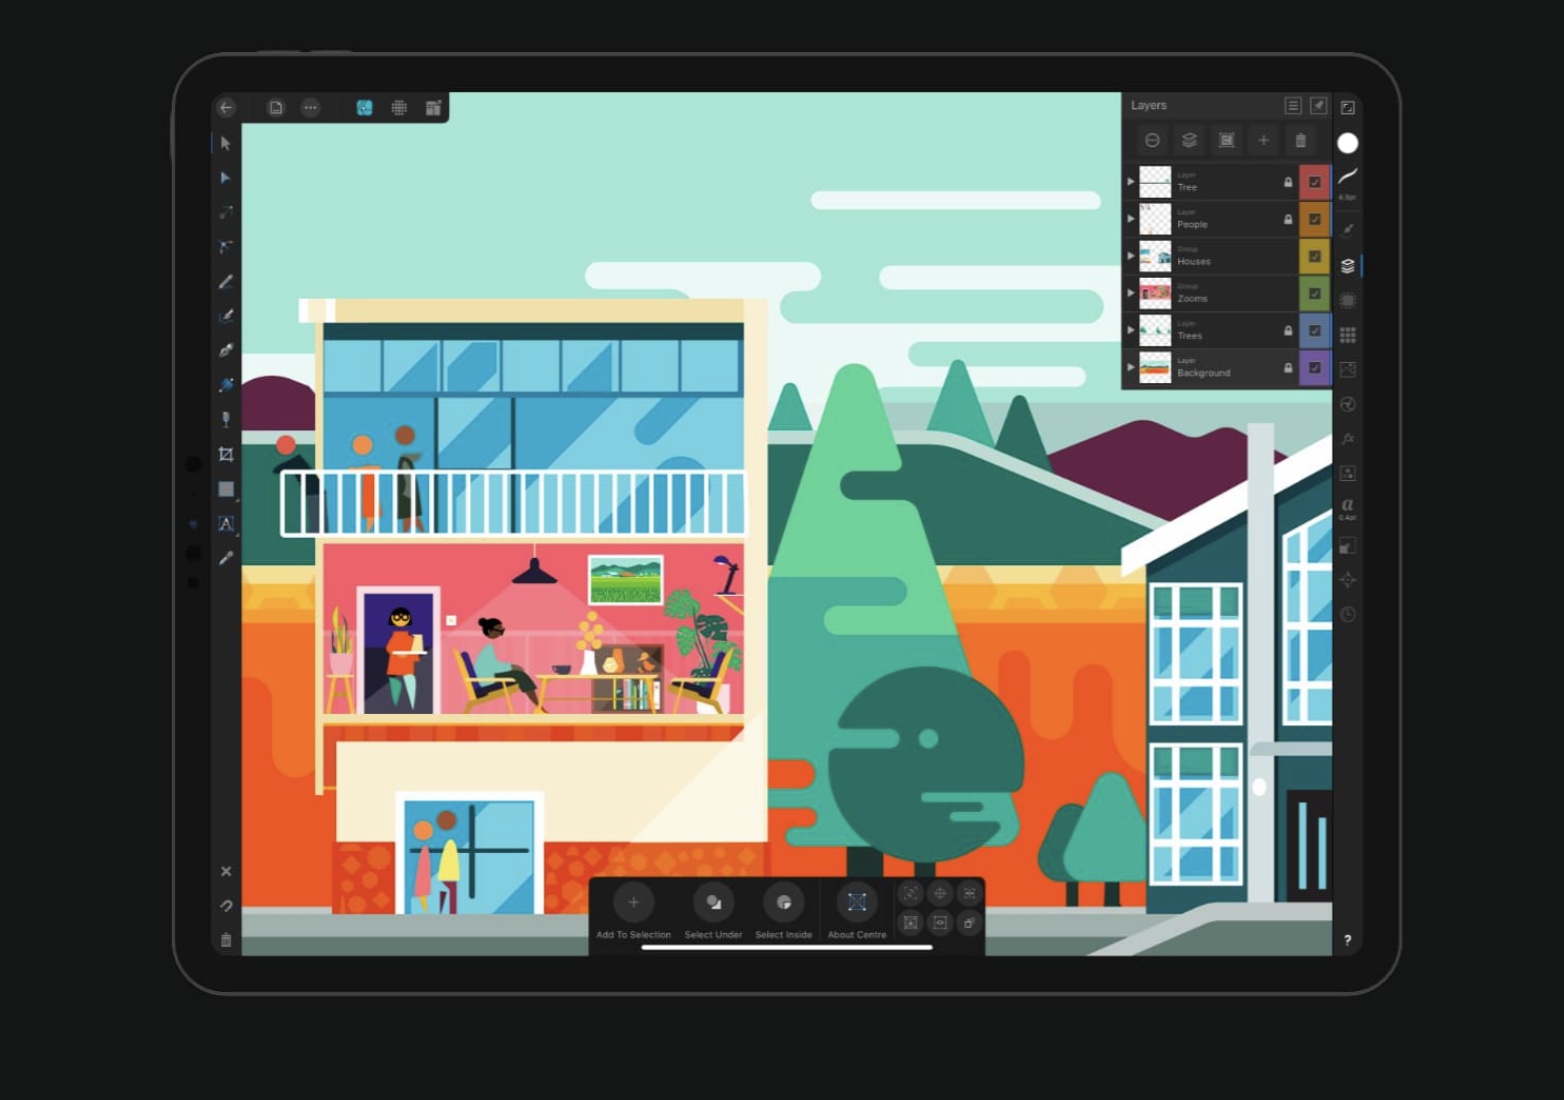 ipad with illustration drawing of residential house in colorful palette